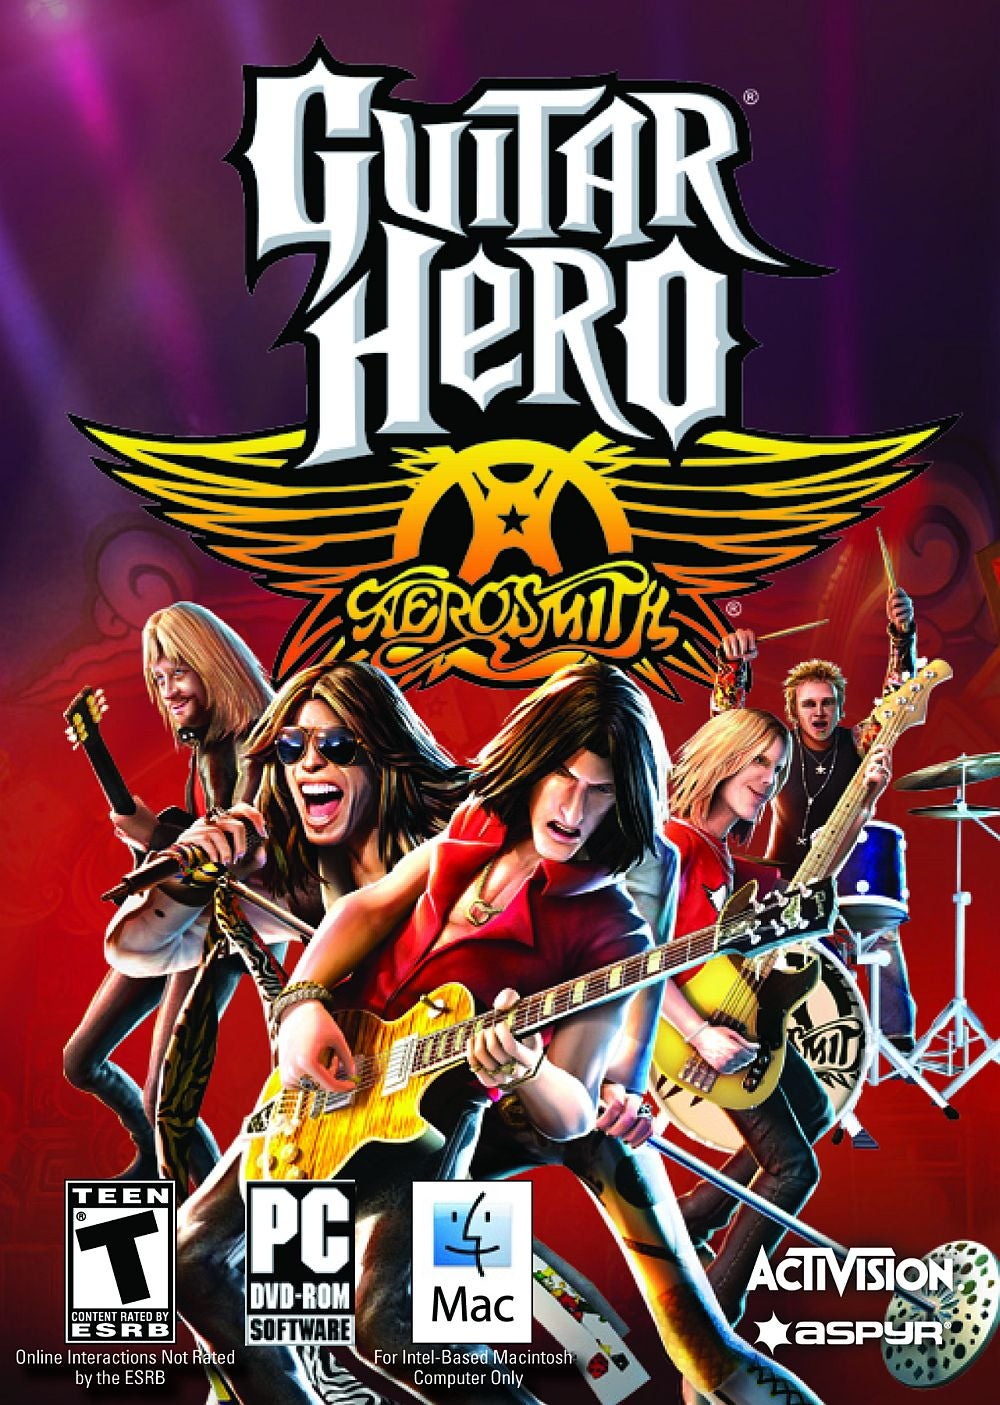 Guitar Hero Aerosmith Cheats Ps2 : guitar, aerosmith, cheats, Cheats, Guitar, Hero:, Aerosmith, Guide